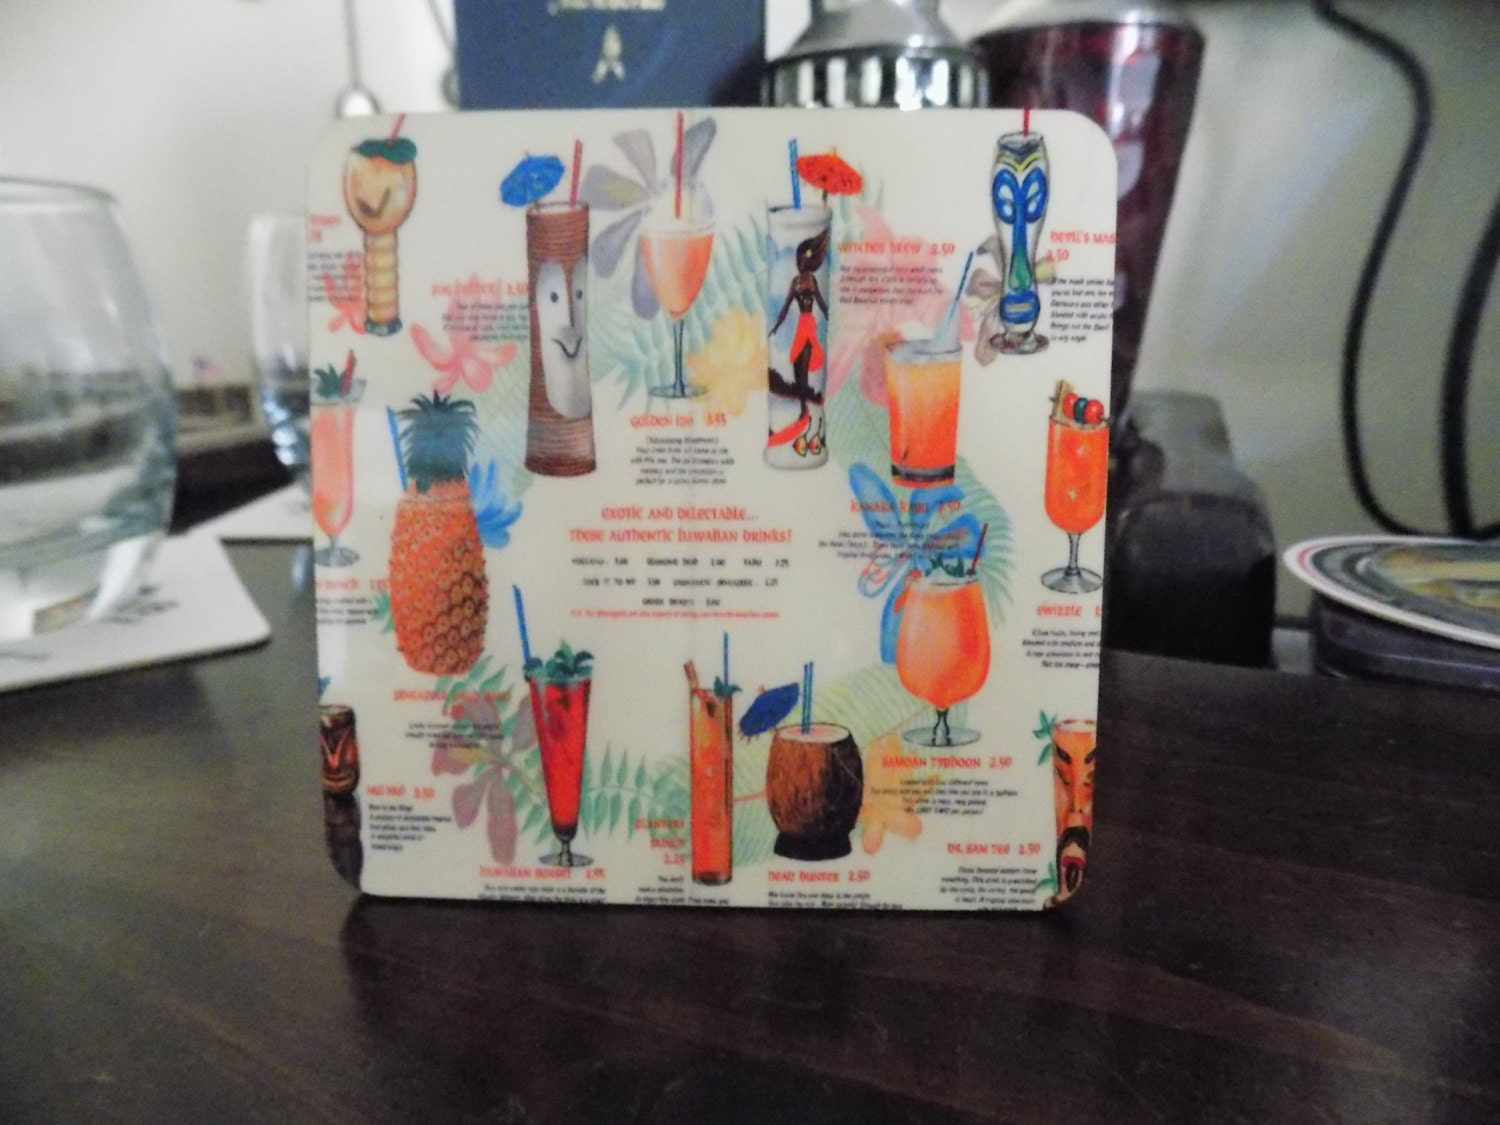 Awesome Tiki Bar Drink Coaster These Are So Cool With All The